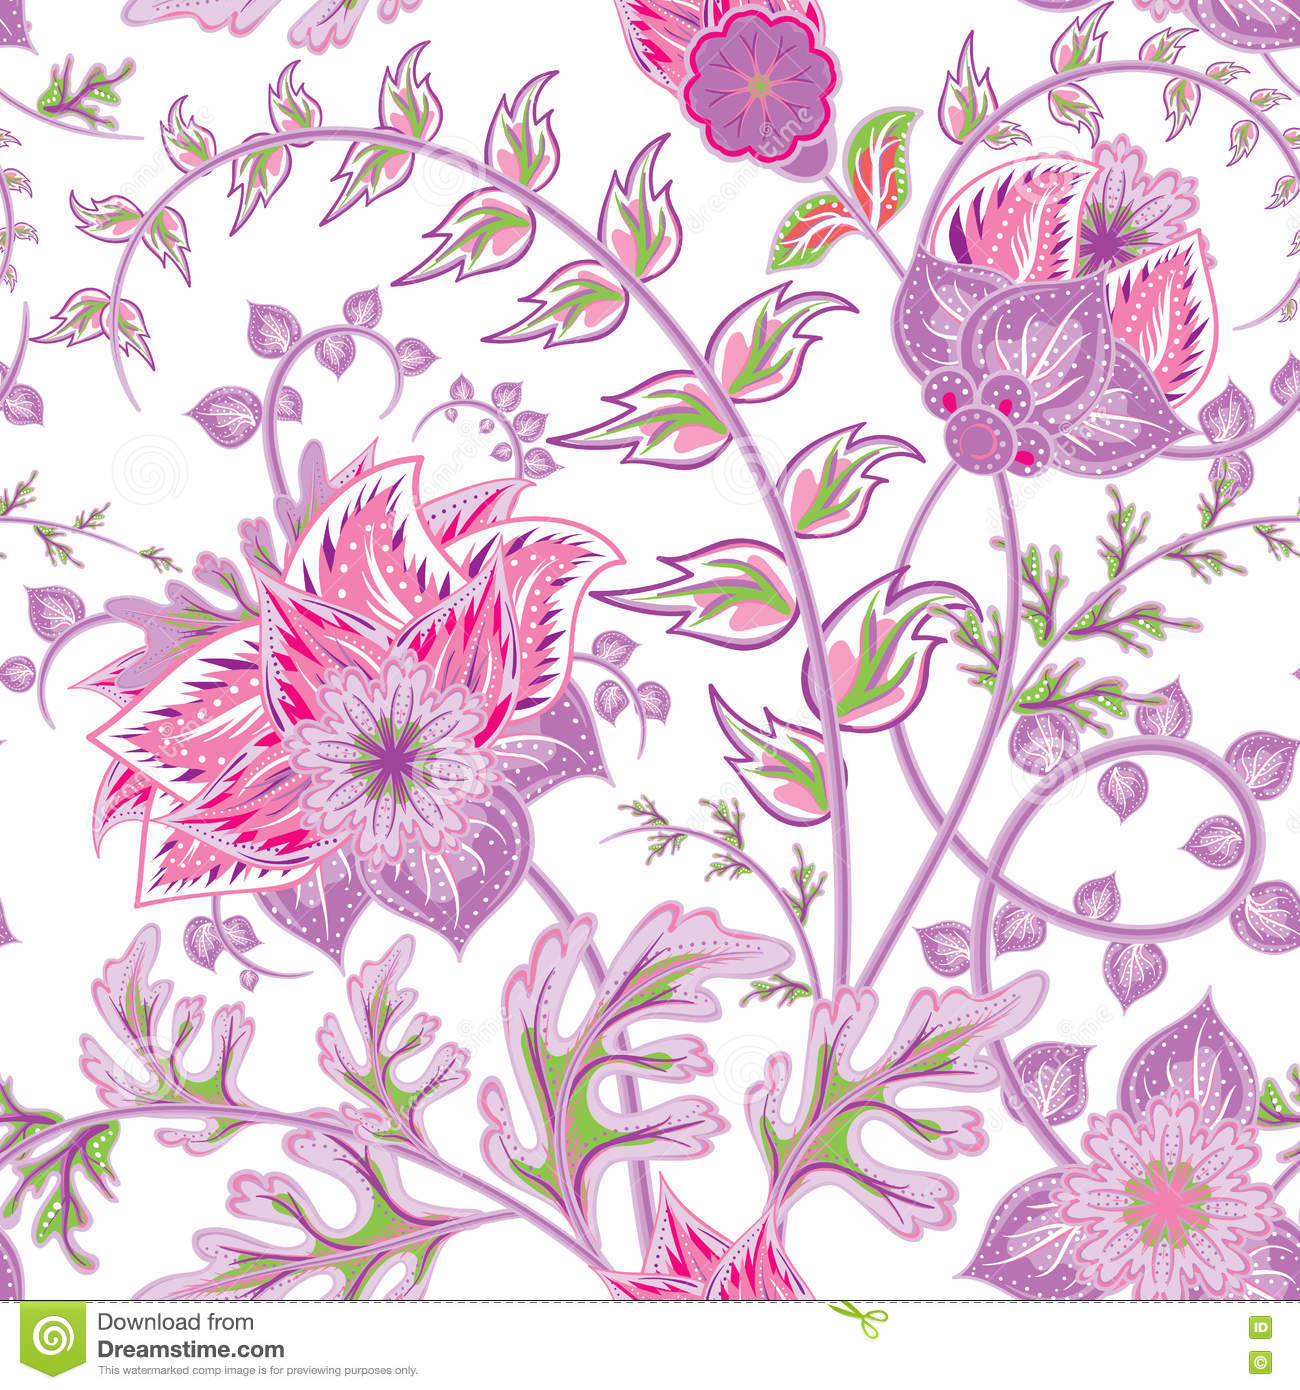 Seamless pattern with flower. Beautiful bright flowers. Romantic hand draw vector seamless pattern.